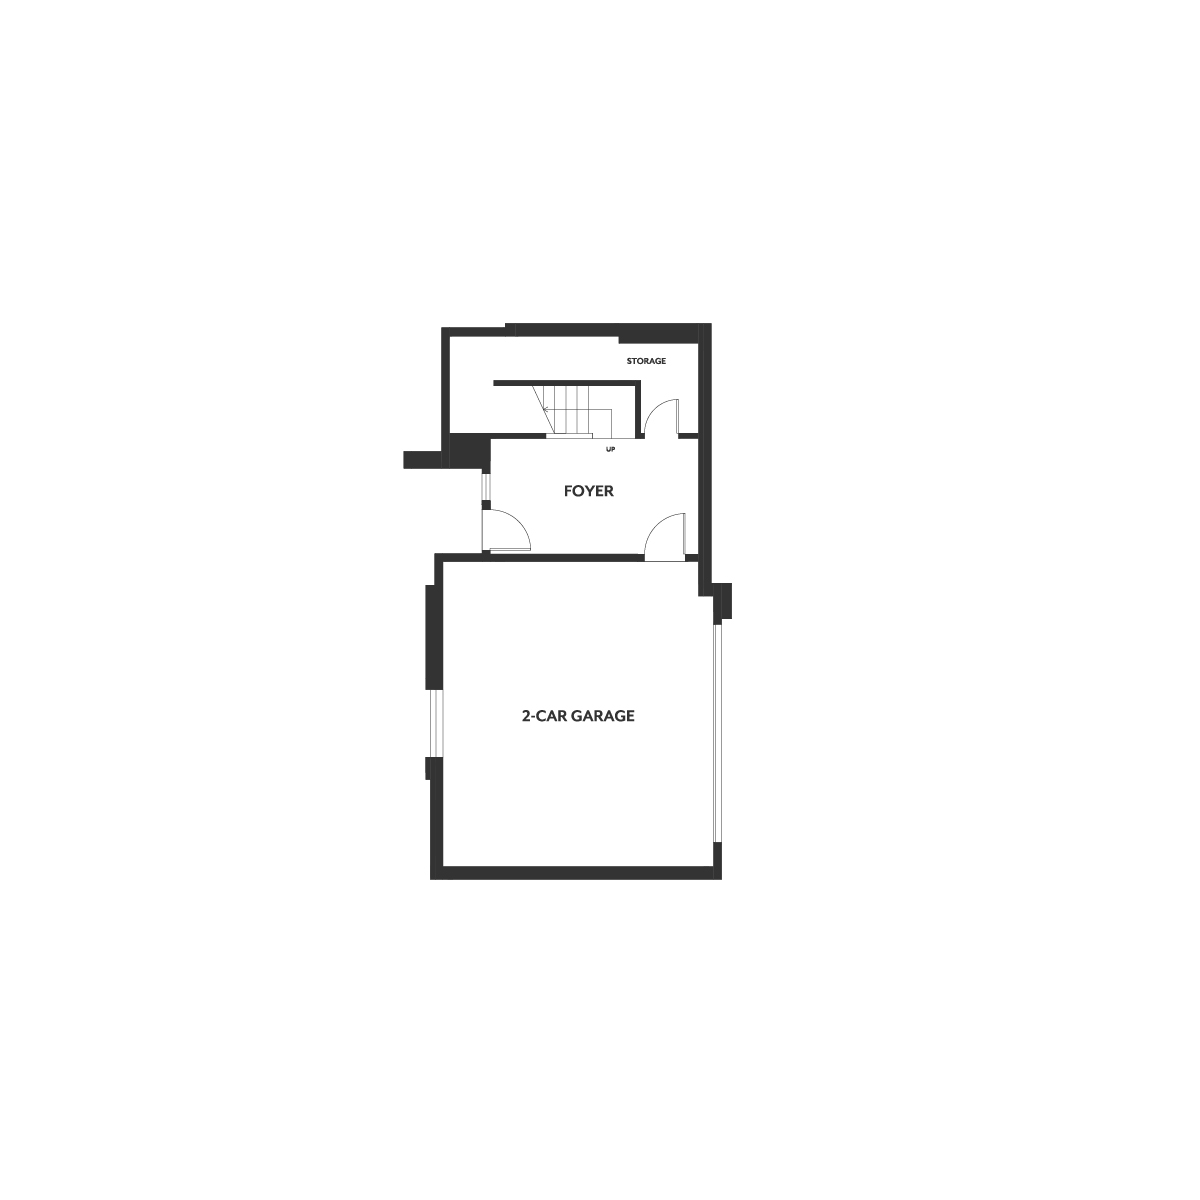 Residence 5 floor 1 plan | Wilshire at Boulevard in Dublin, CA | Brookfield Residential